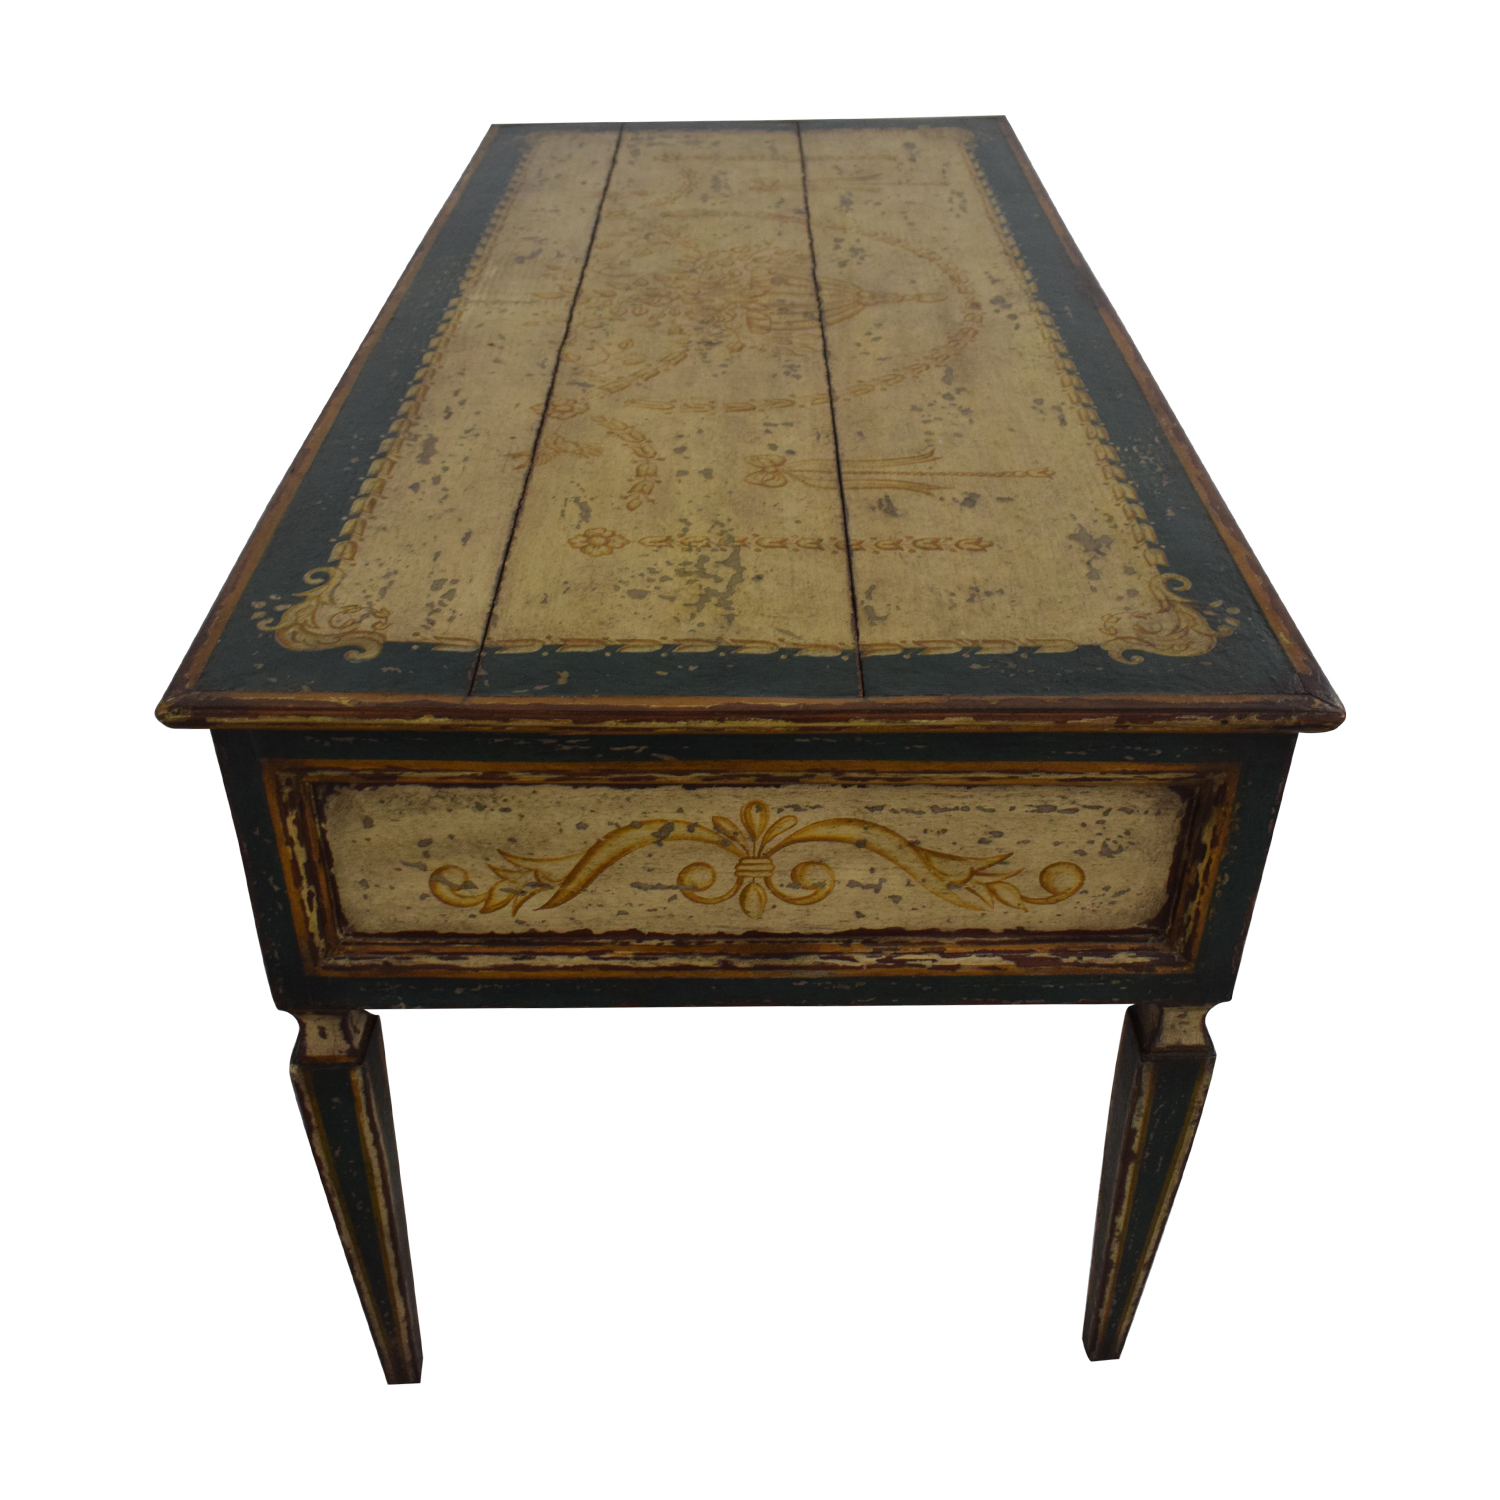 Equestrian Hand Painted Reclaimed Wood Desk second hand